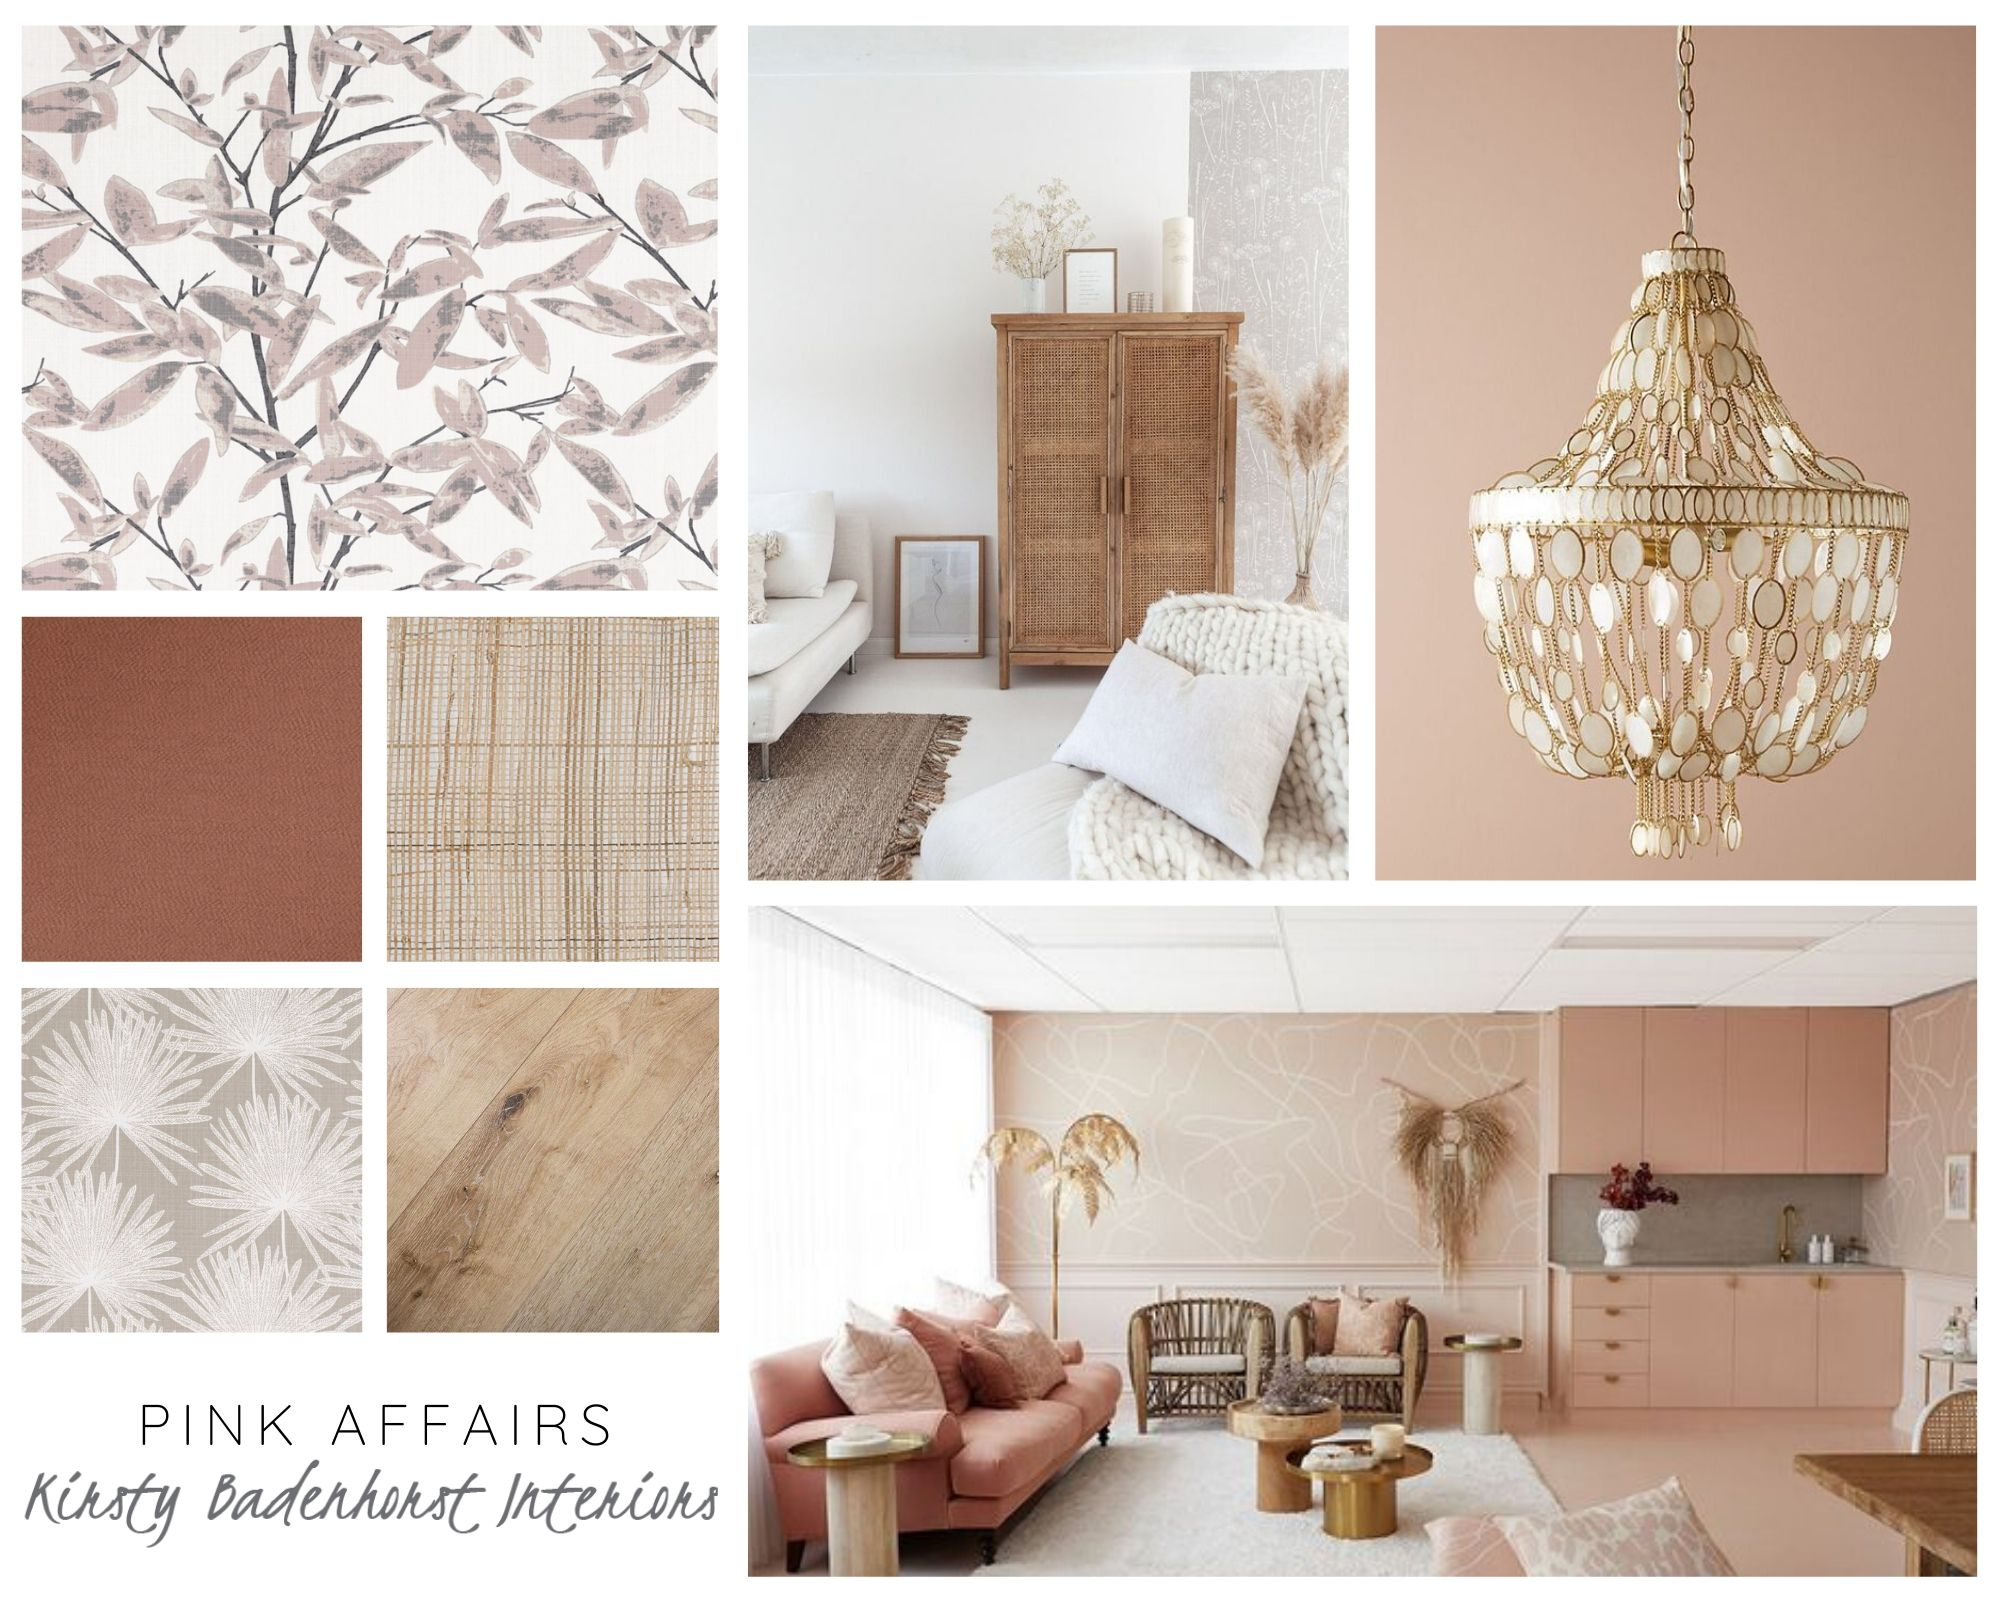 Pink Affairs - A Moodboard